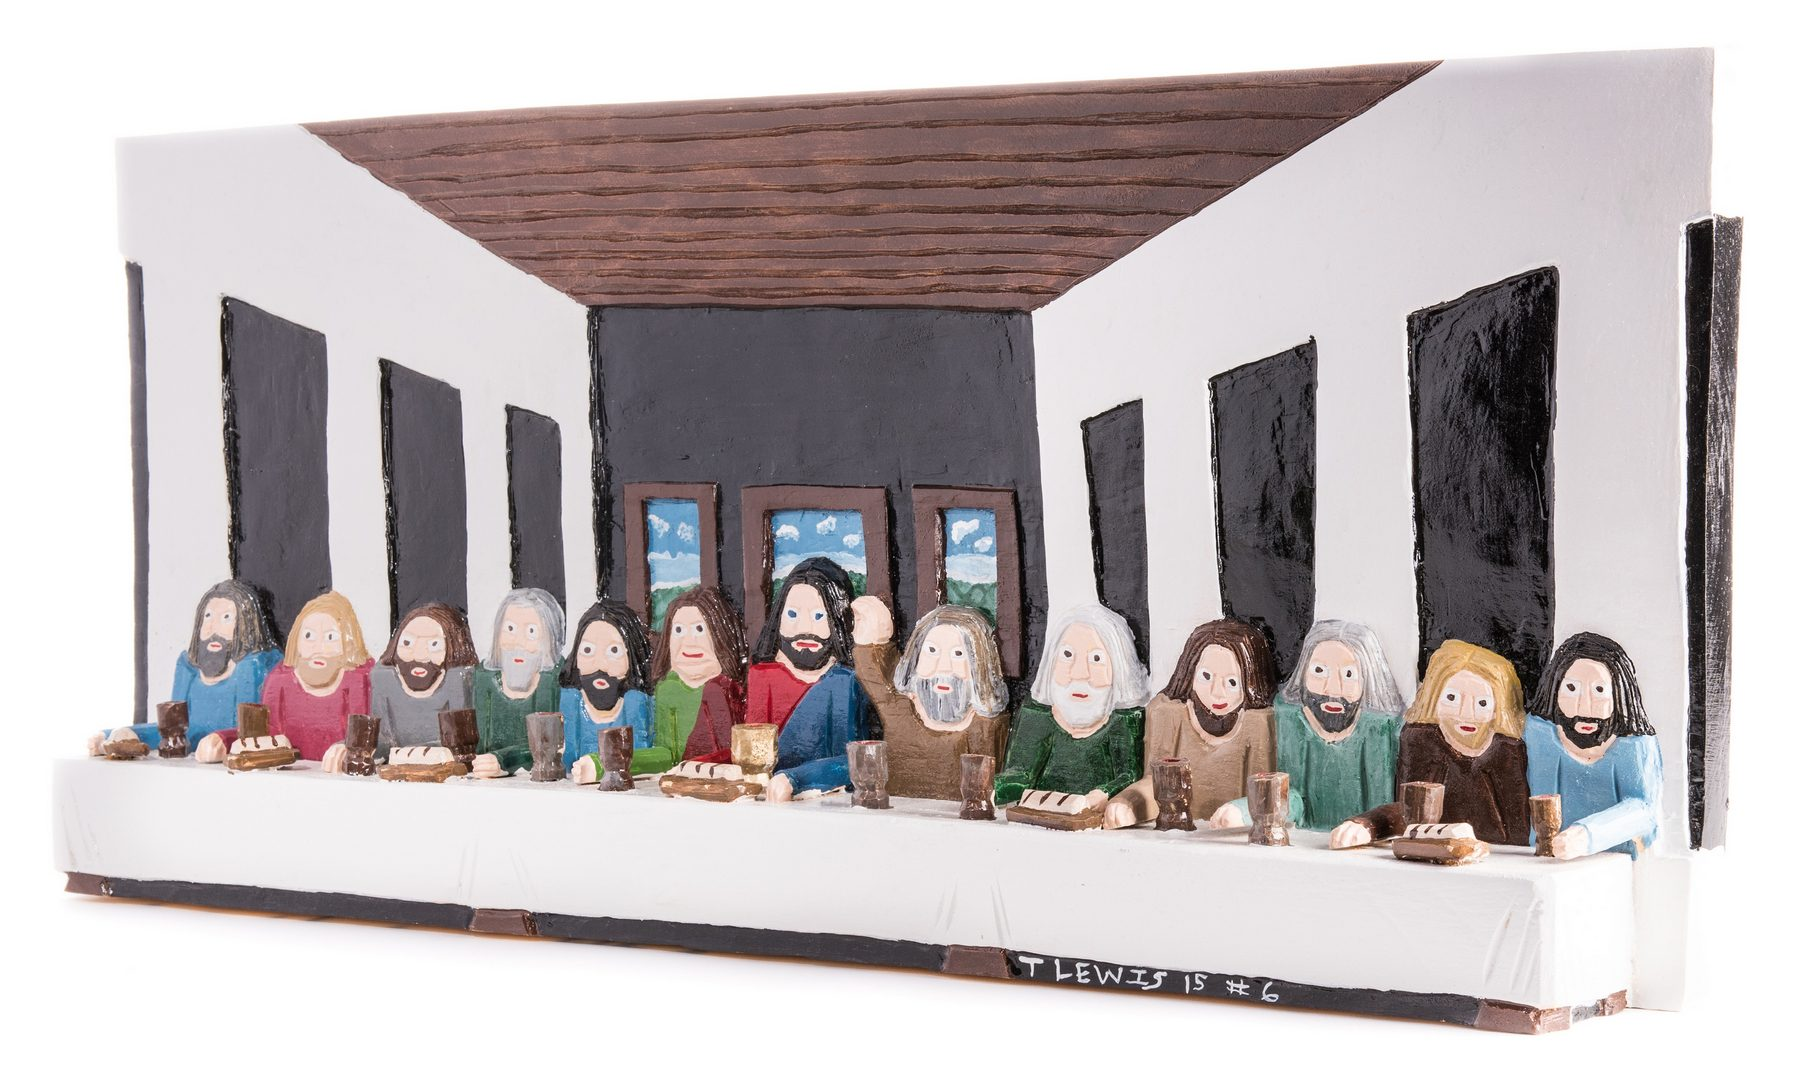 Lot 661: Tim Lewis Relief Carving, Last Supper